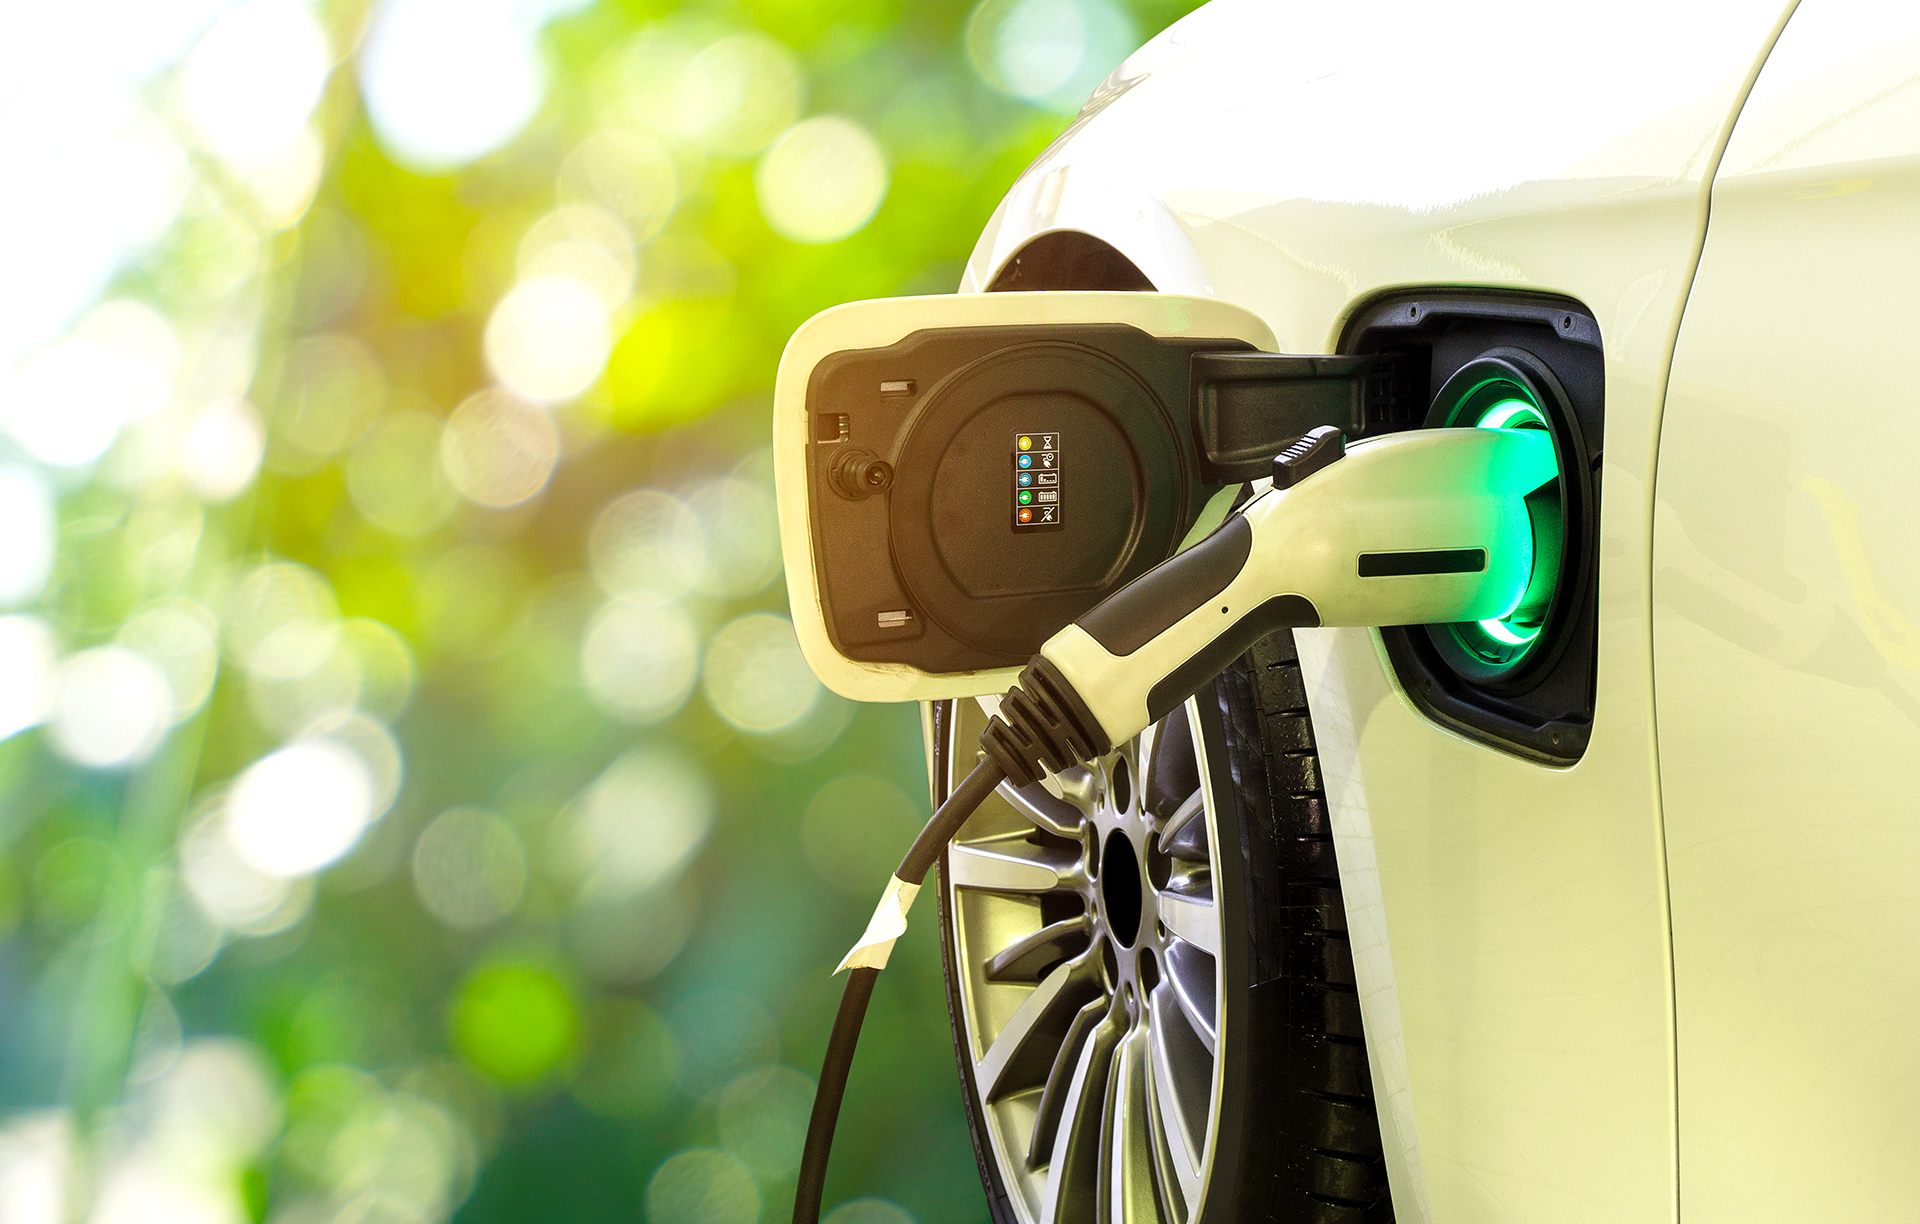 An electric vehicle is at a charging station. The power supply cable is plugged in. The background is blurred leaves with a soft yellow light peeking through.